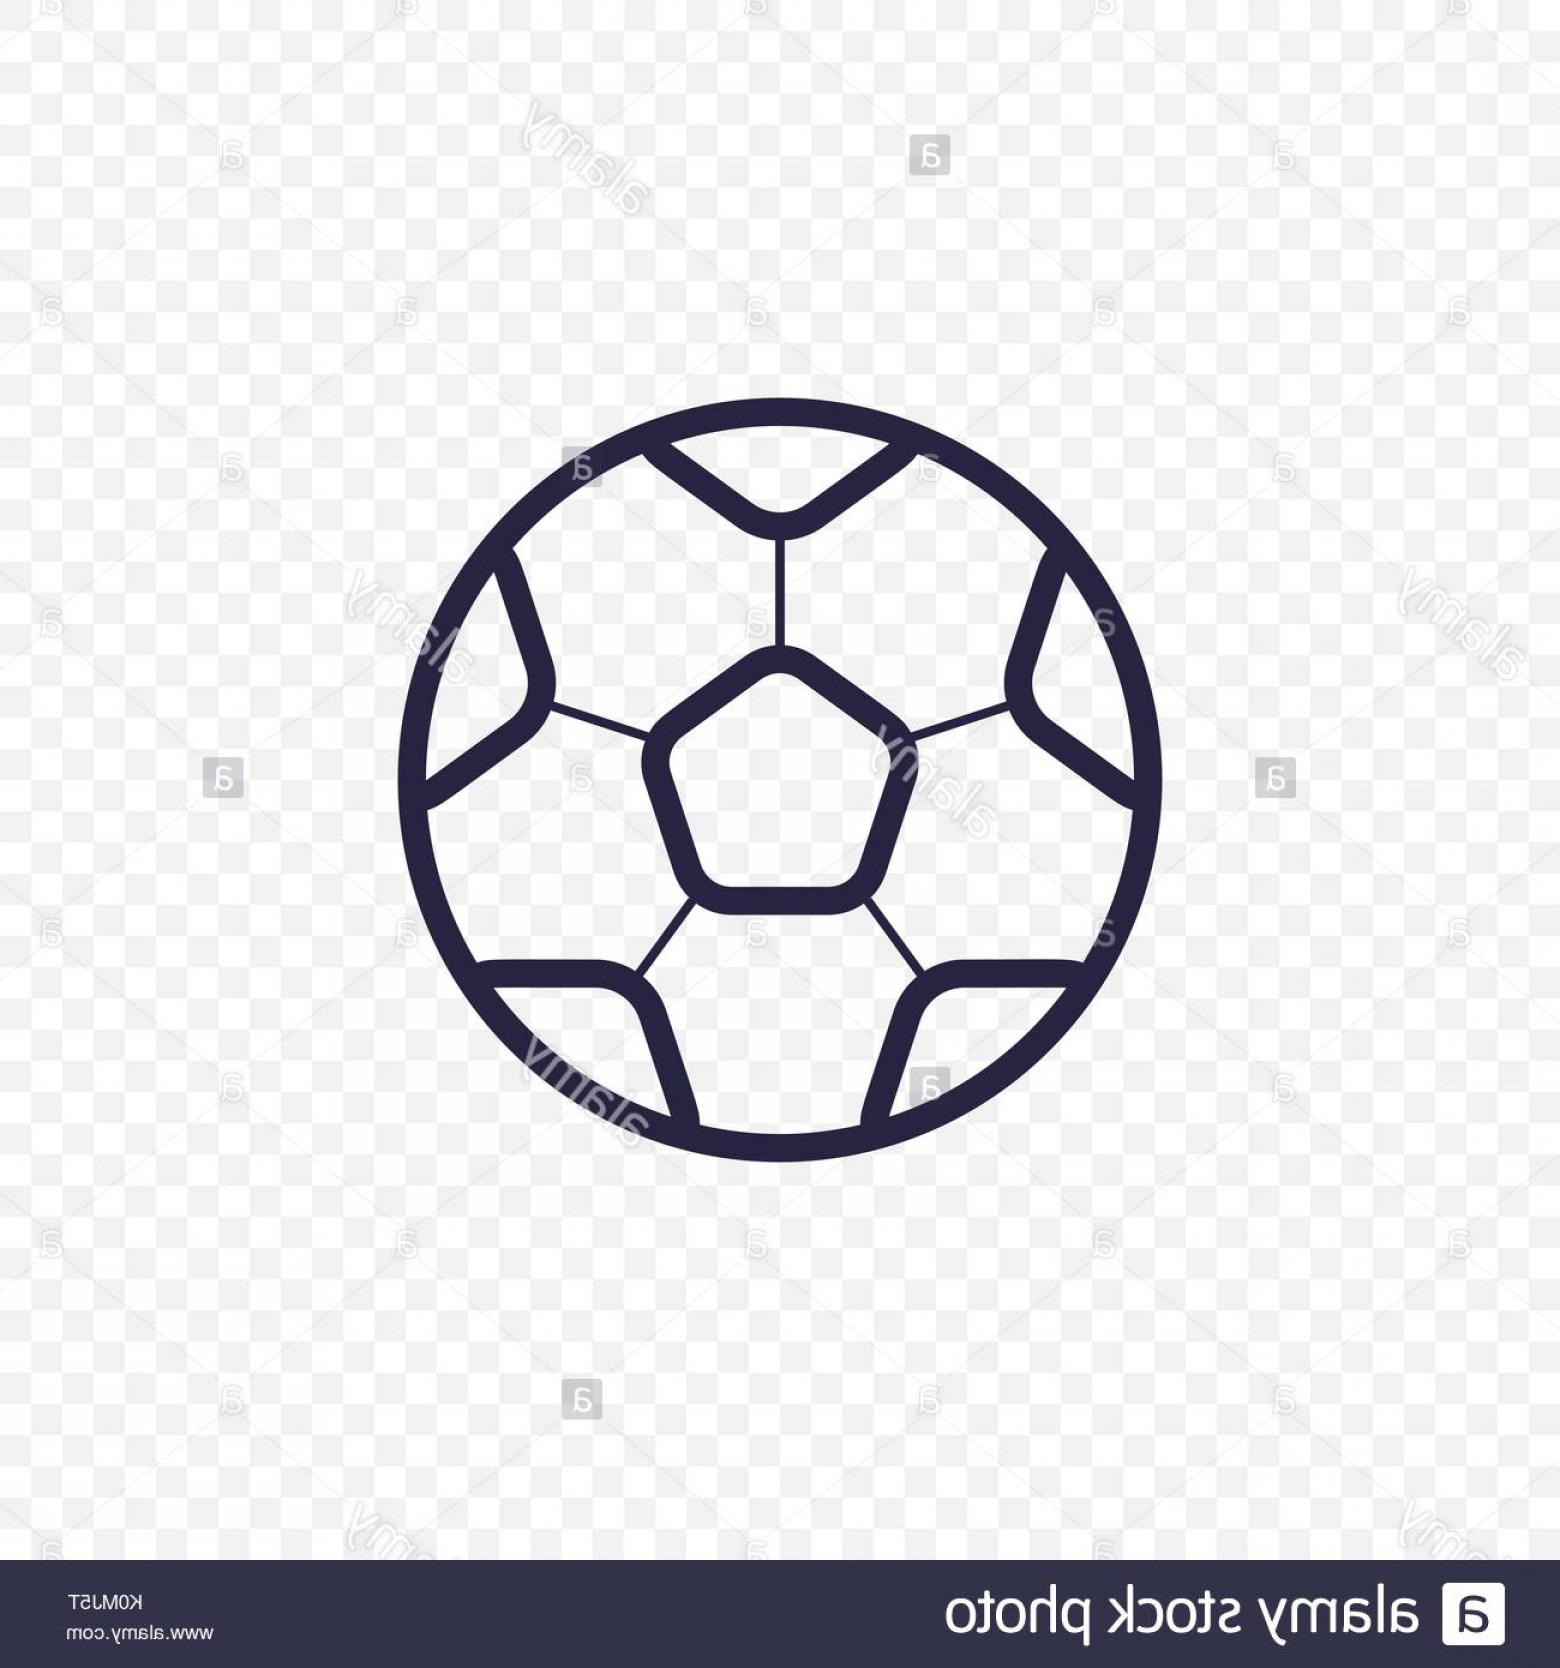 Abstract Football Vector Outline: Stock Photo Soccer Ball Simple Line Icon Football Game Thin Linear Signs Outline